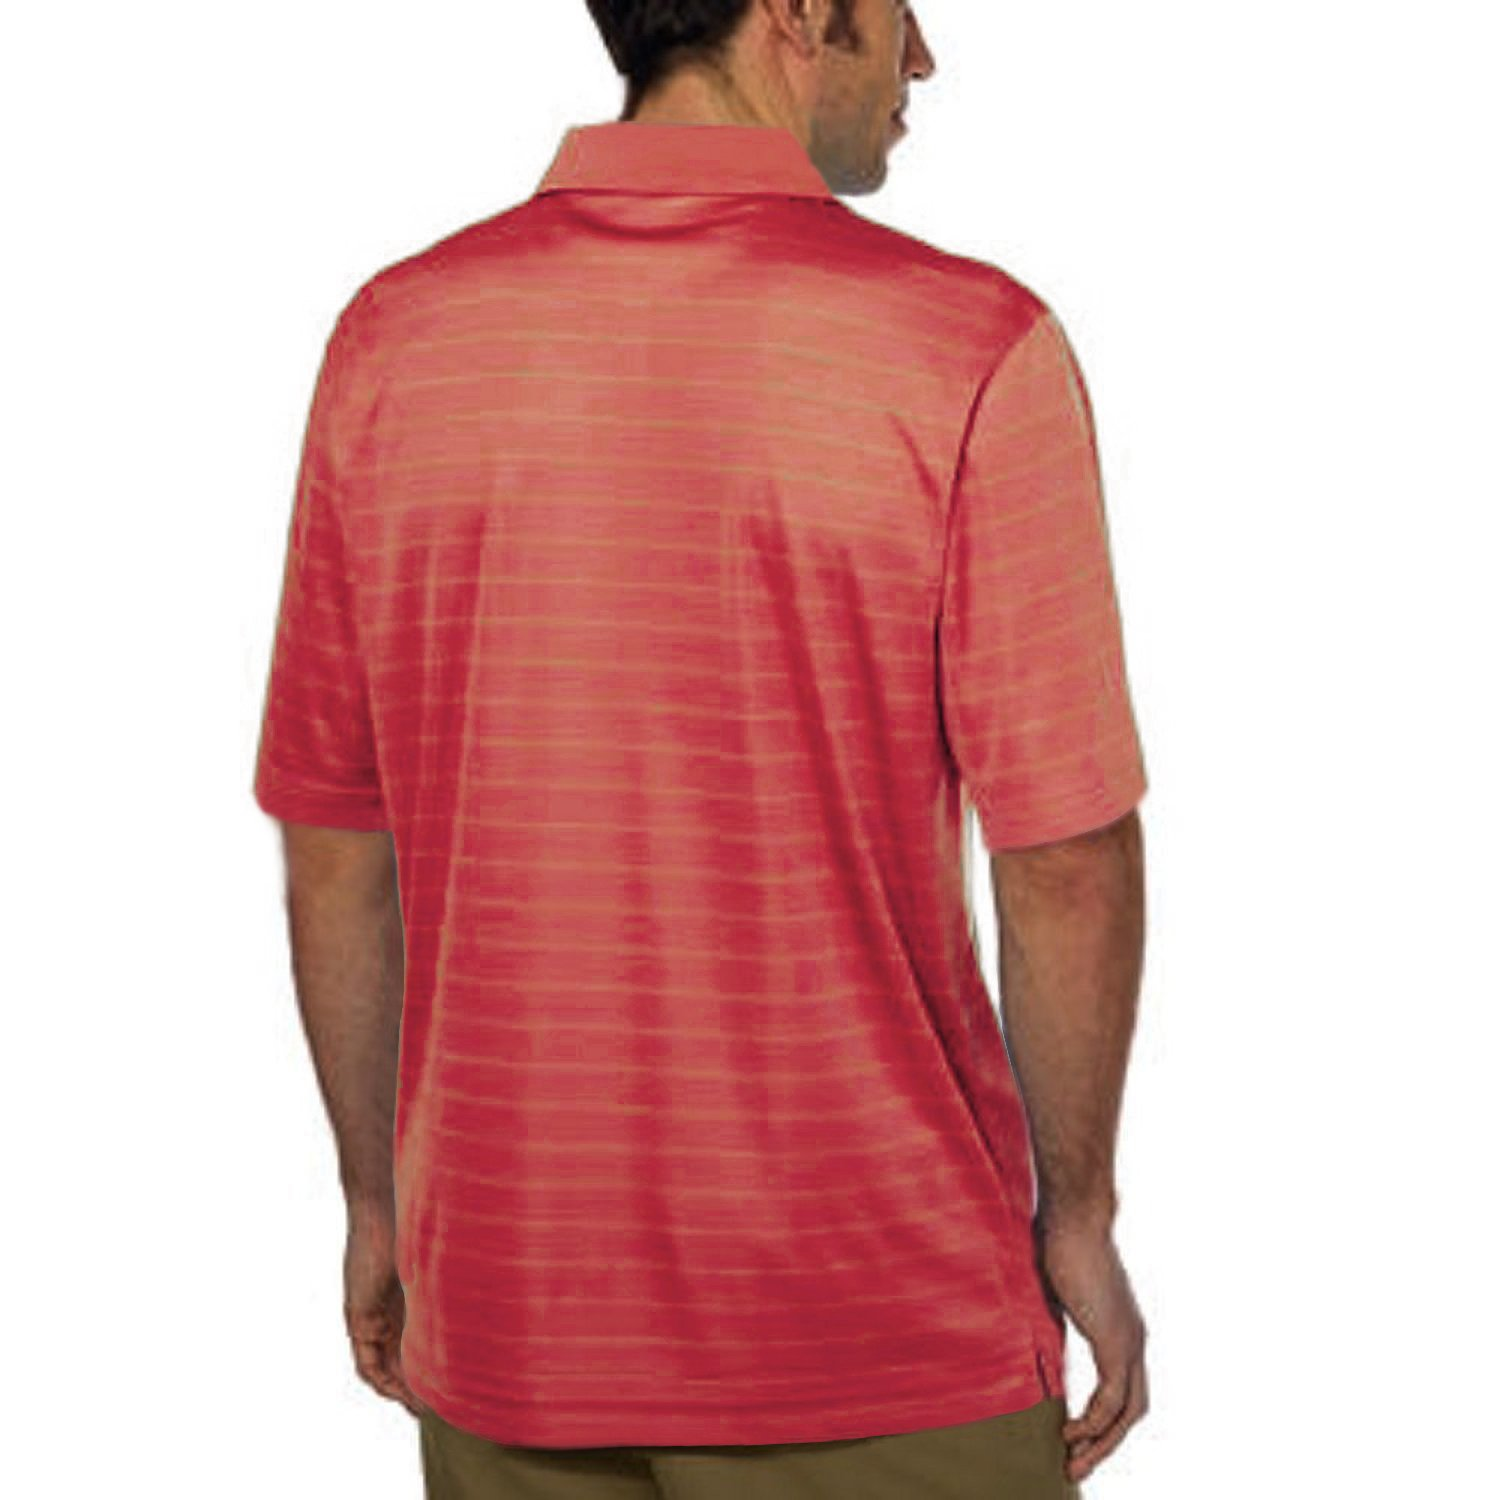 Size M//L//XL, Many Colors Greg Norman Technical Performance Play Dry Polo,